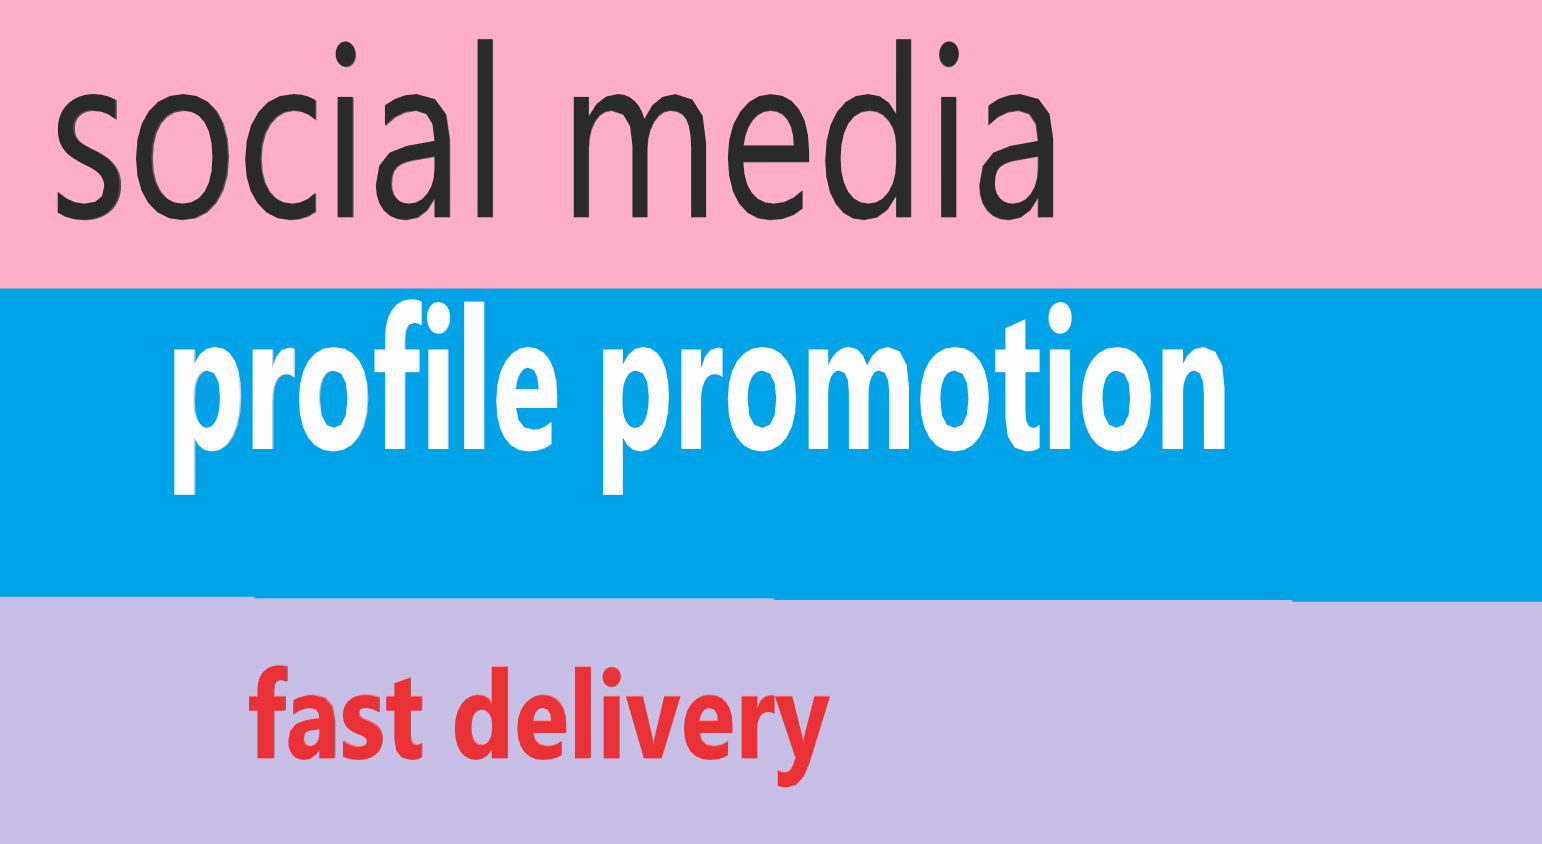 social media profile users promotion fast delivery